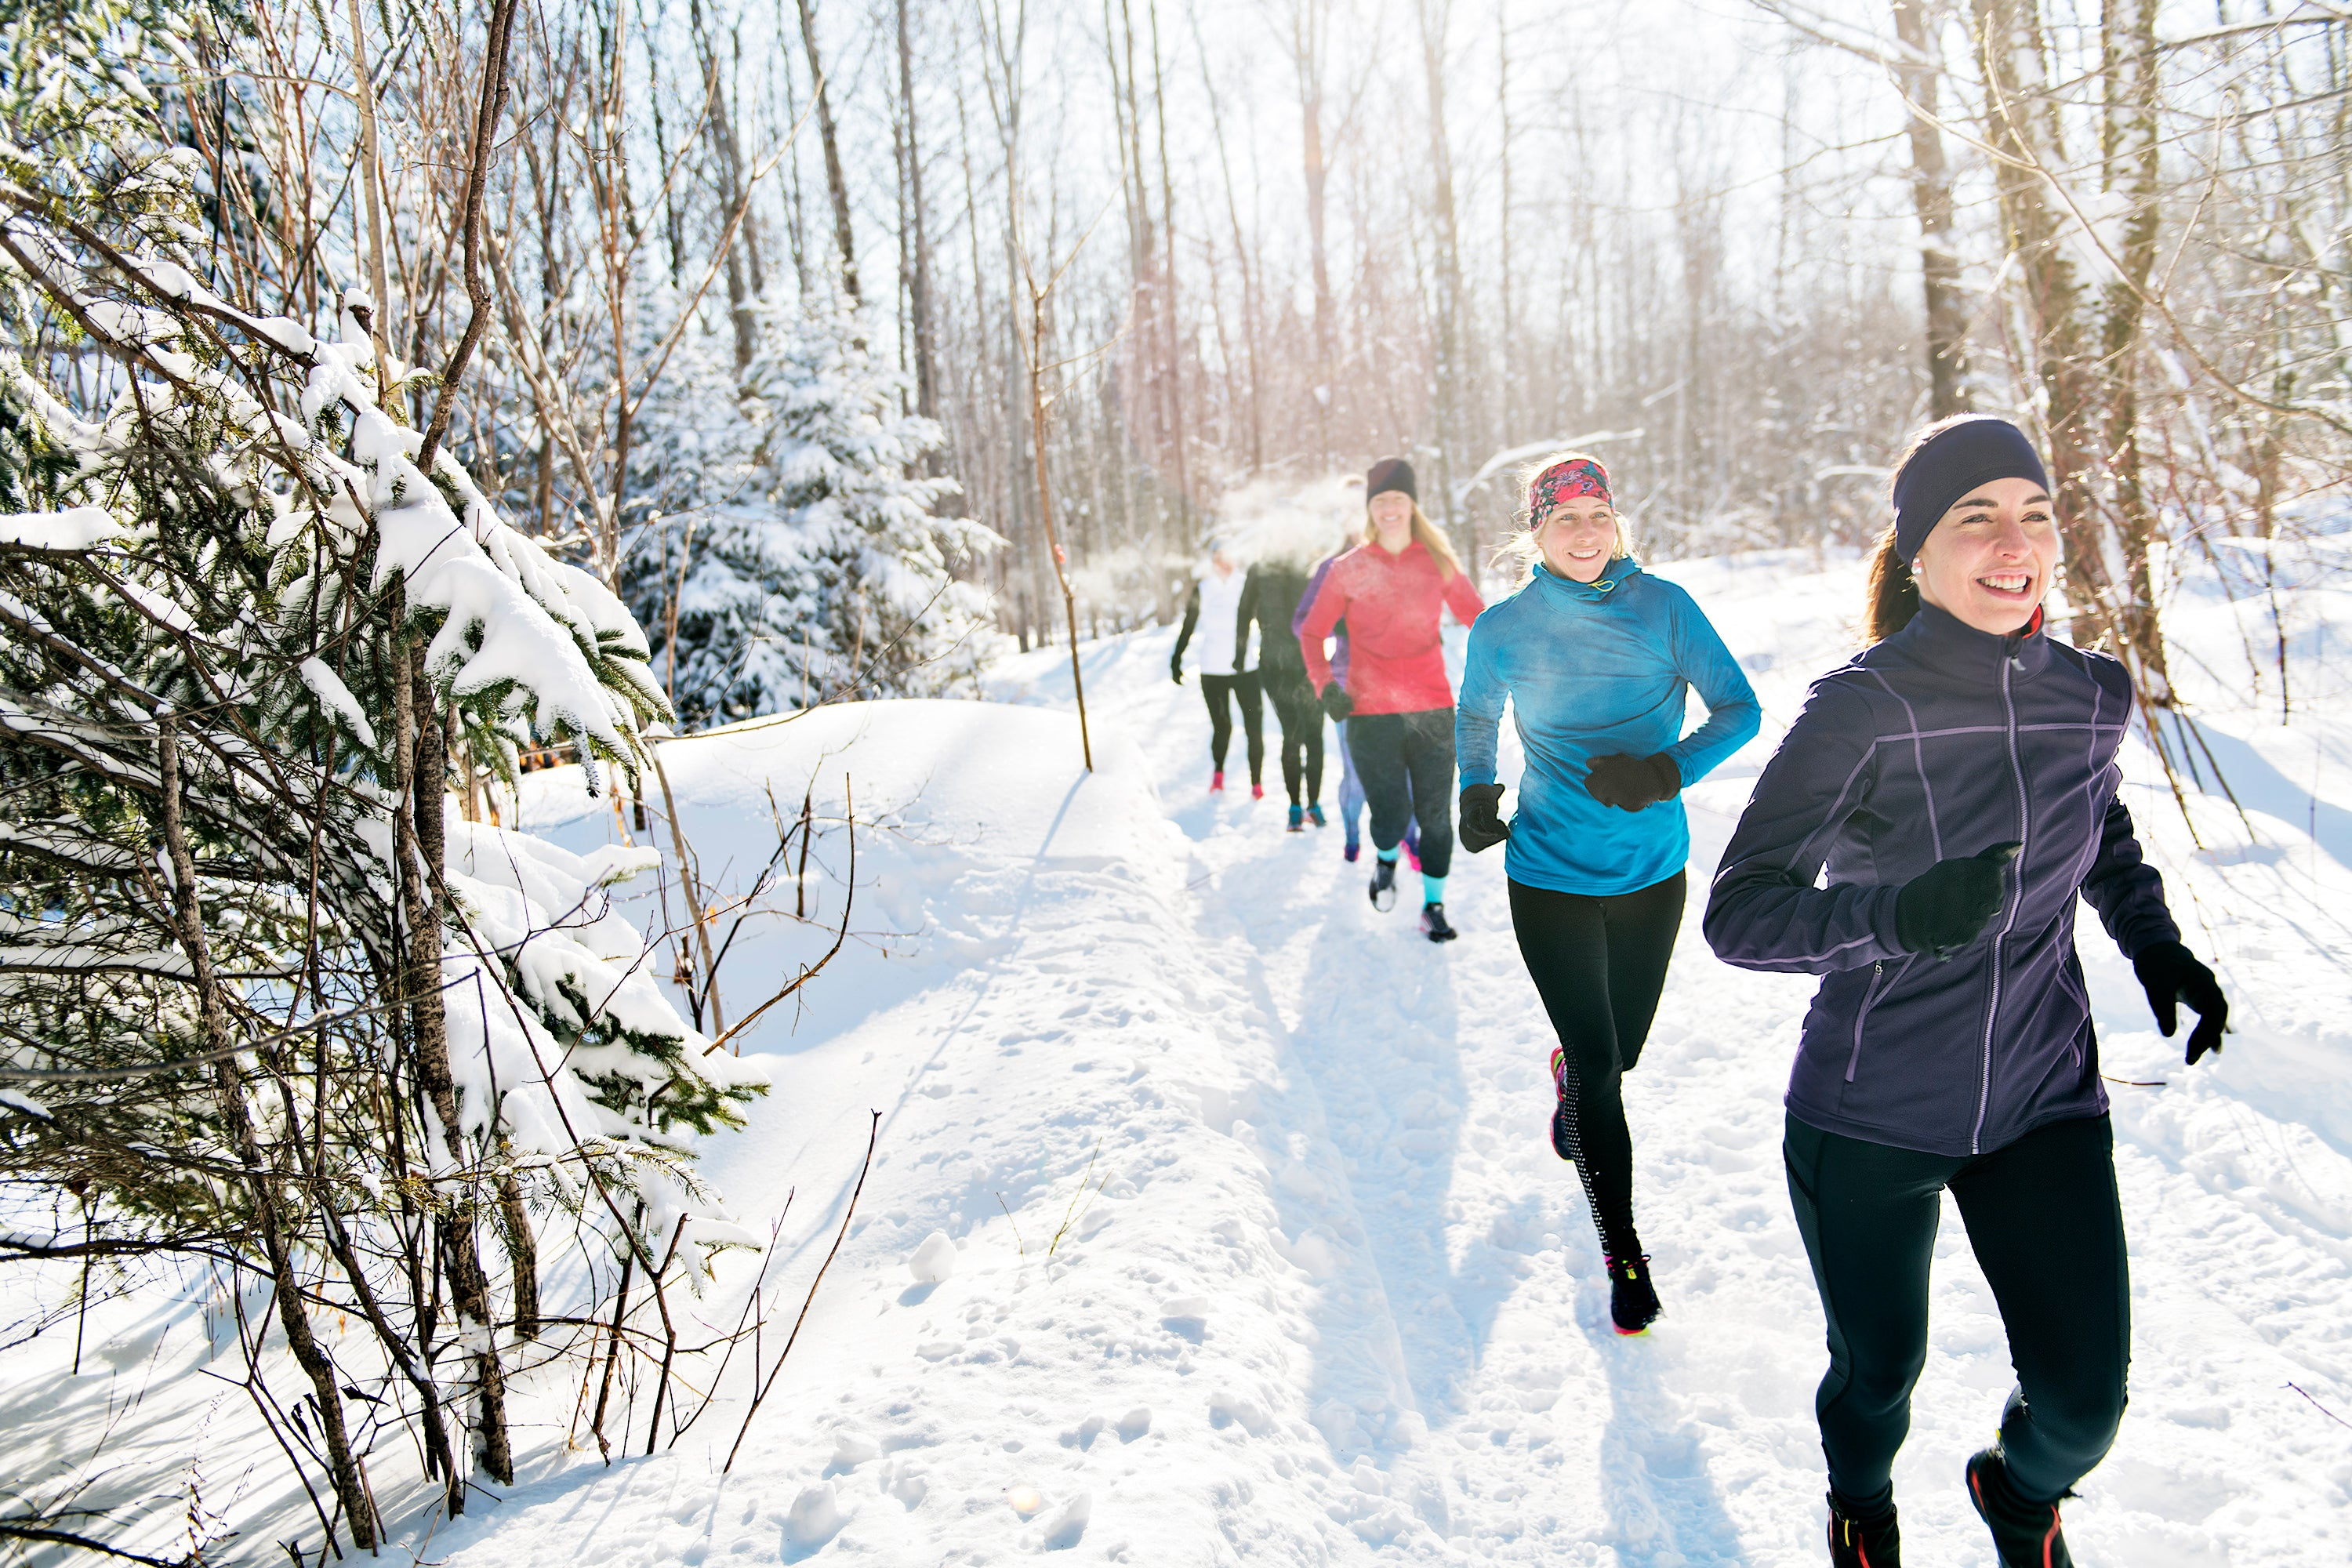 happy people in winter coats running on a trail through snowy woods